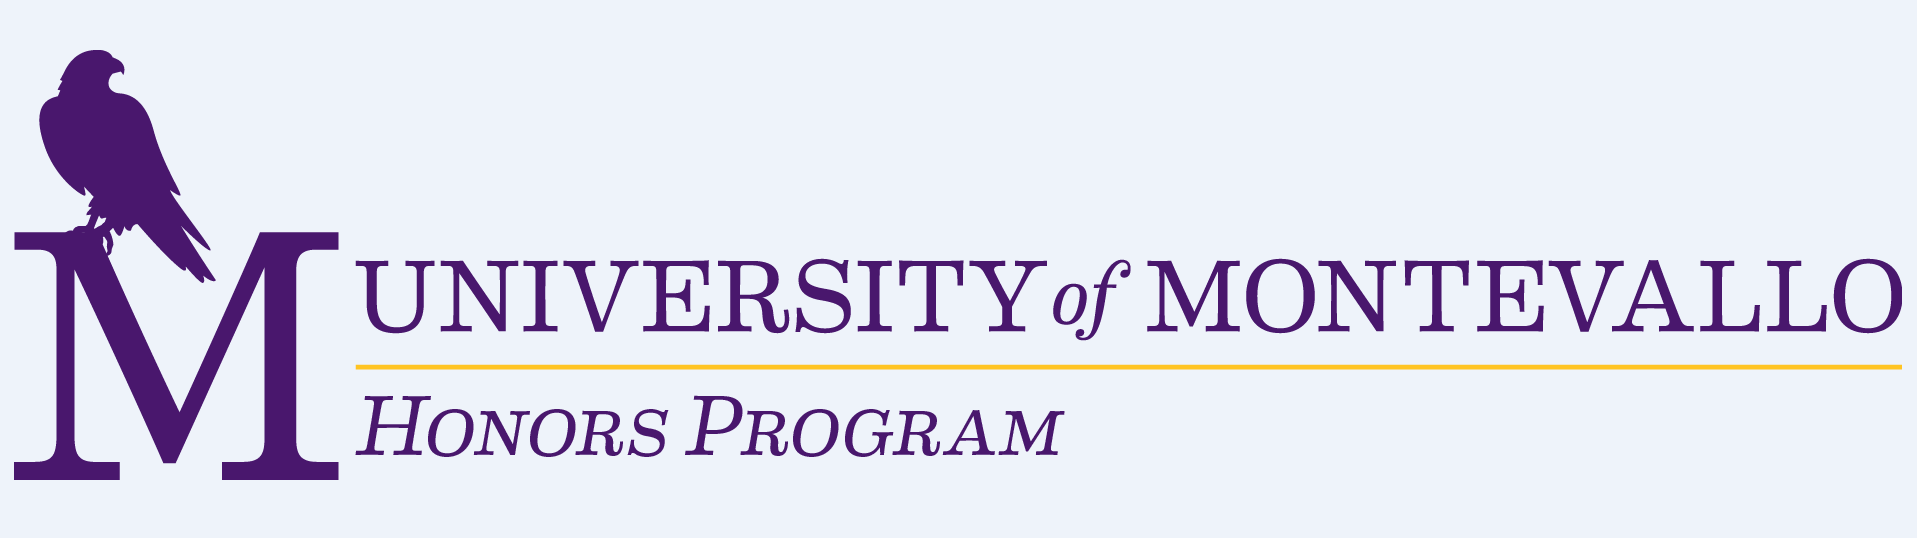 University of Montevallo honors program logo